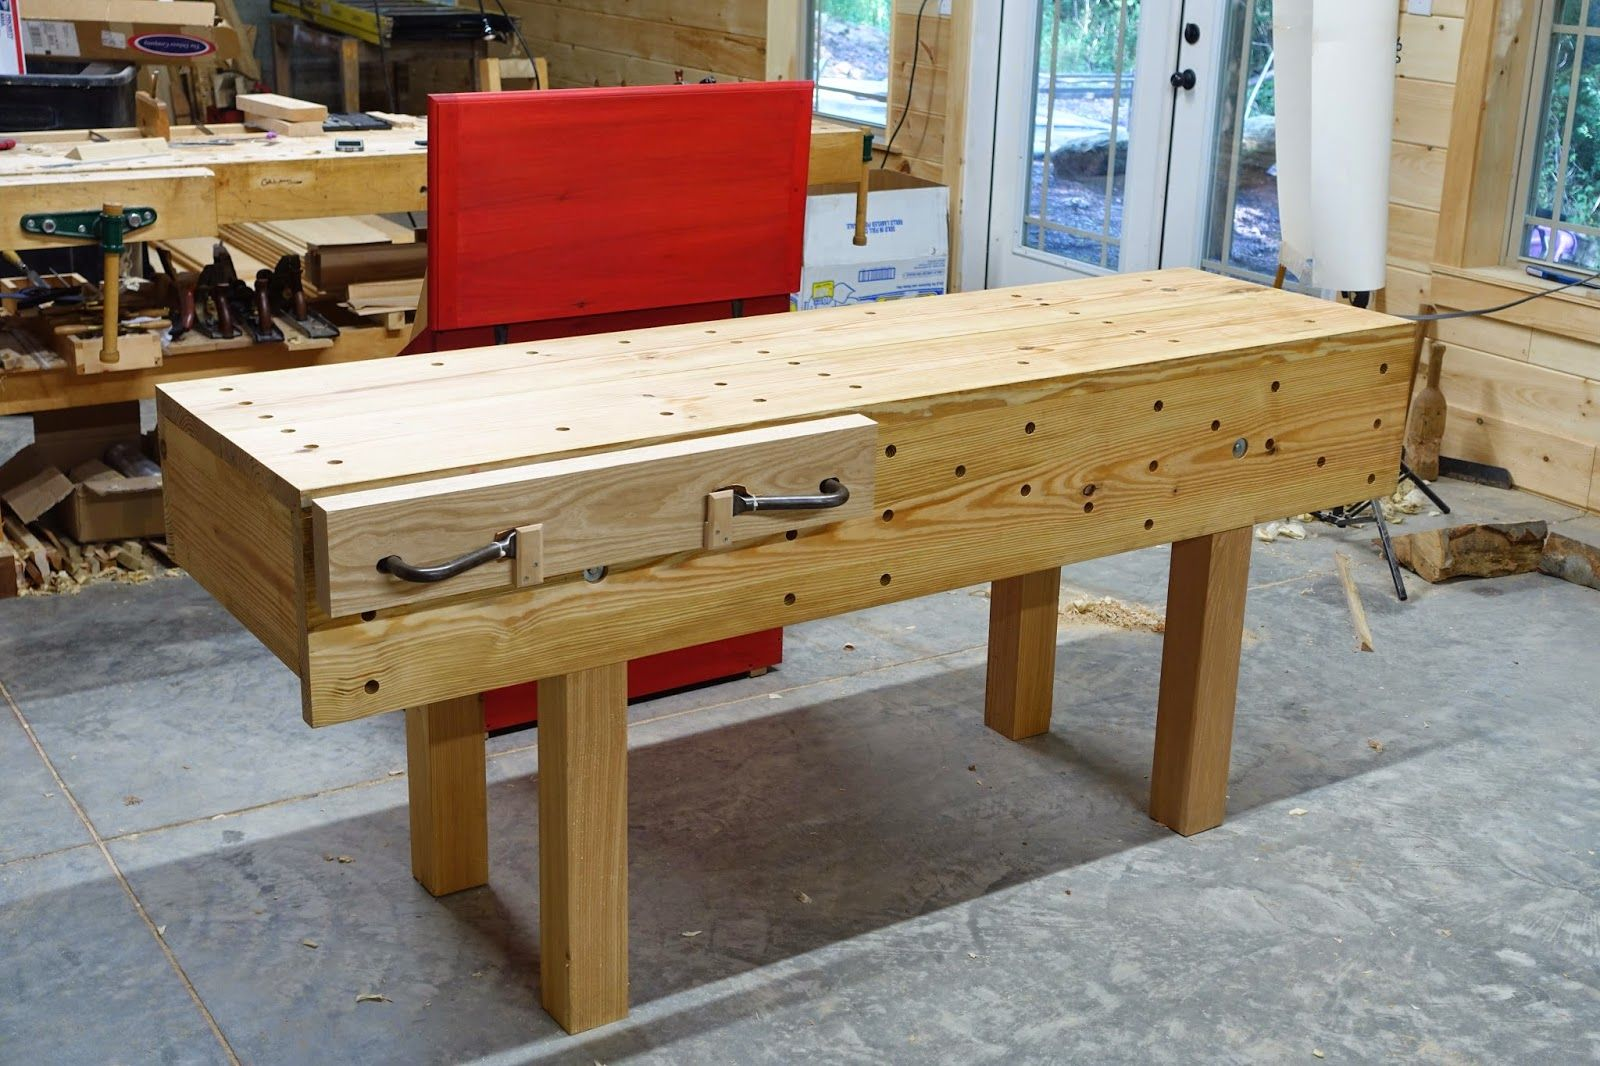 Caleb James Chairmaker Planemaker The Nicholson Bench With Holdfast Vice Woodworking Bench Plans Woodworking Bench Vise Woodworking Bench